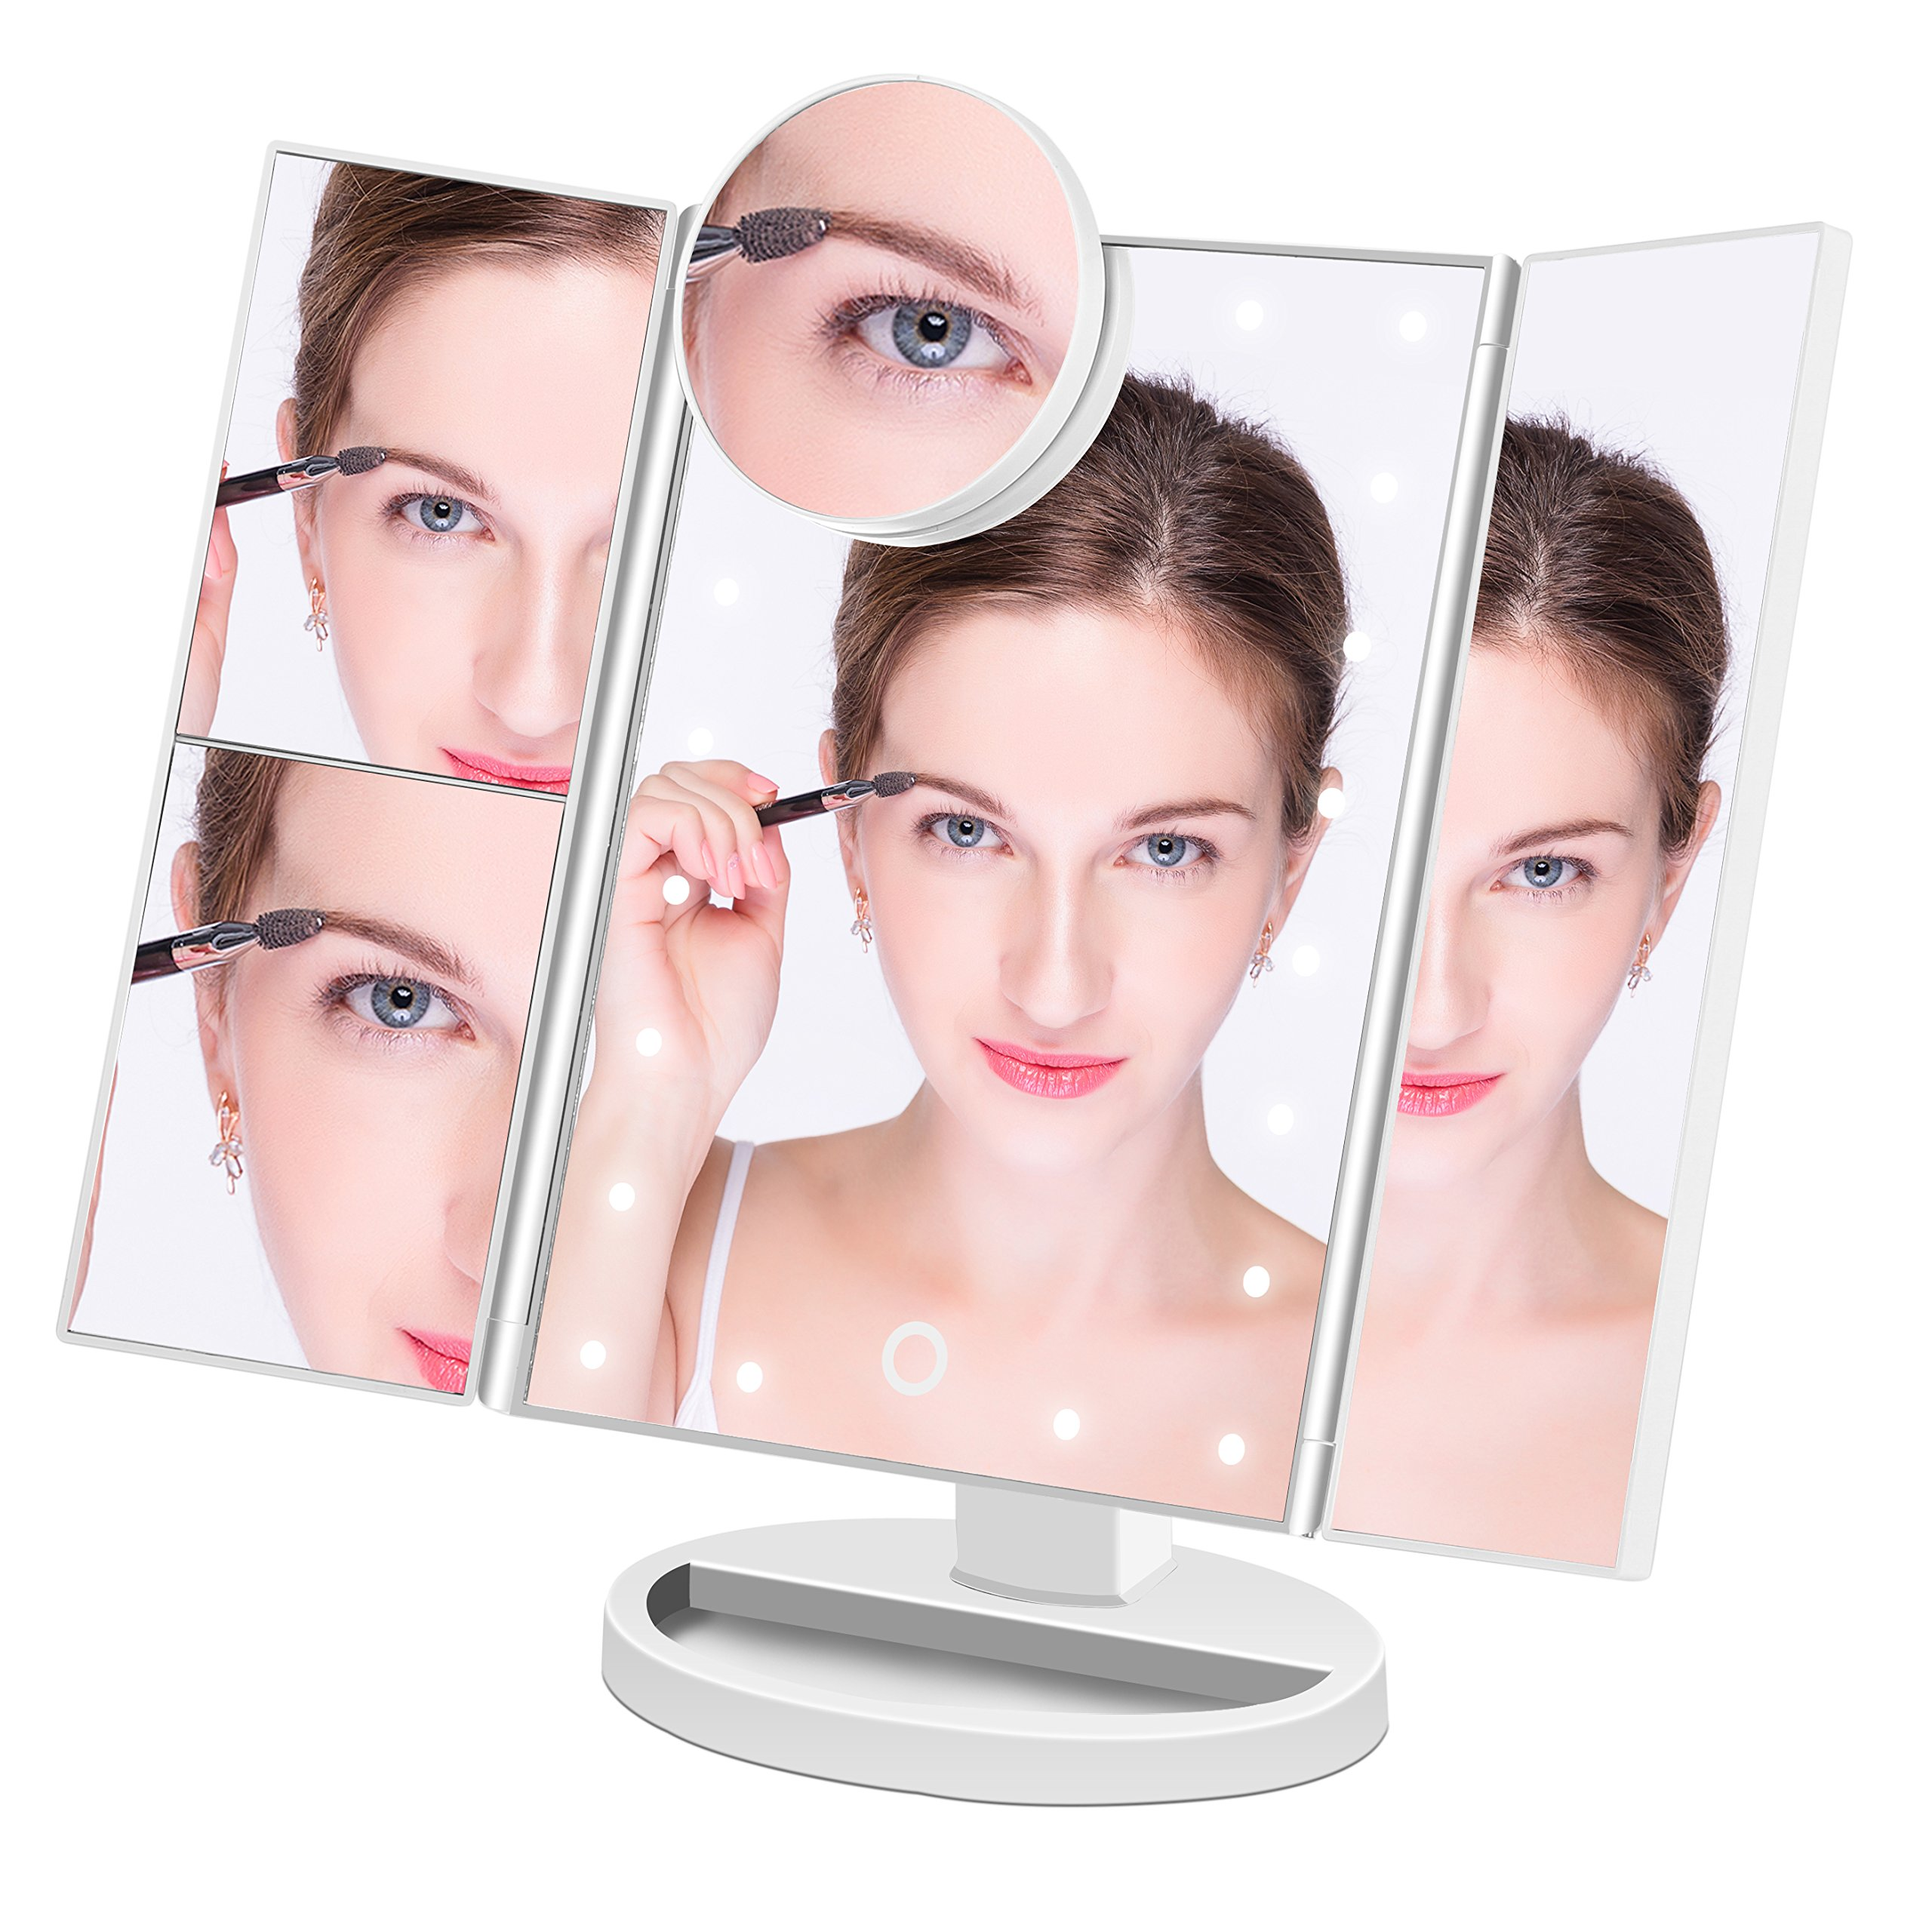 Makeup Mirror Lighted Makeup Vanity Mirror with 21 LED Lights, 3X/2X Magnification and Detachable 10X Magnifying Mirror,Tri-flod LED Makeup Mirror with Touch Screen (White)